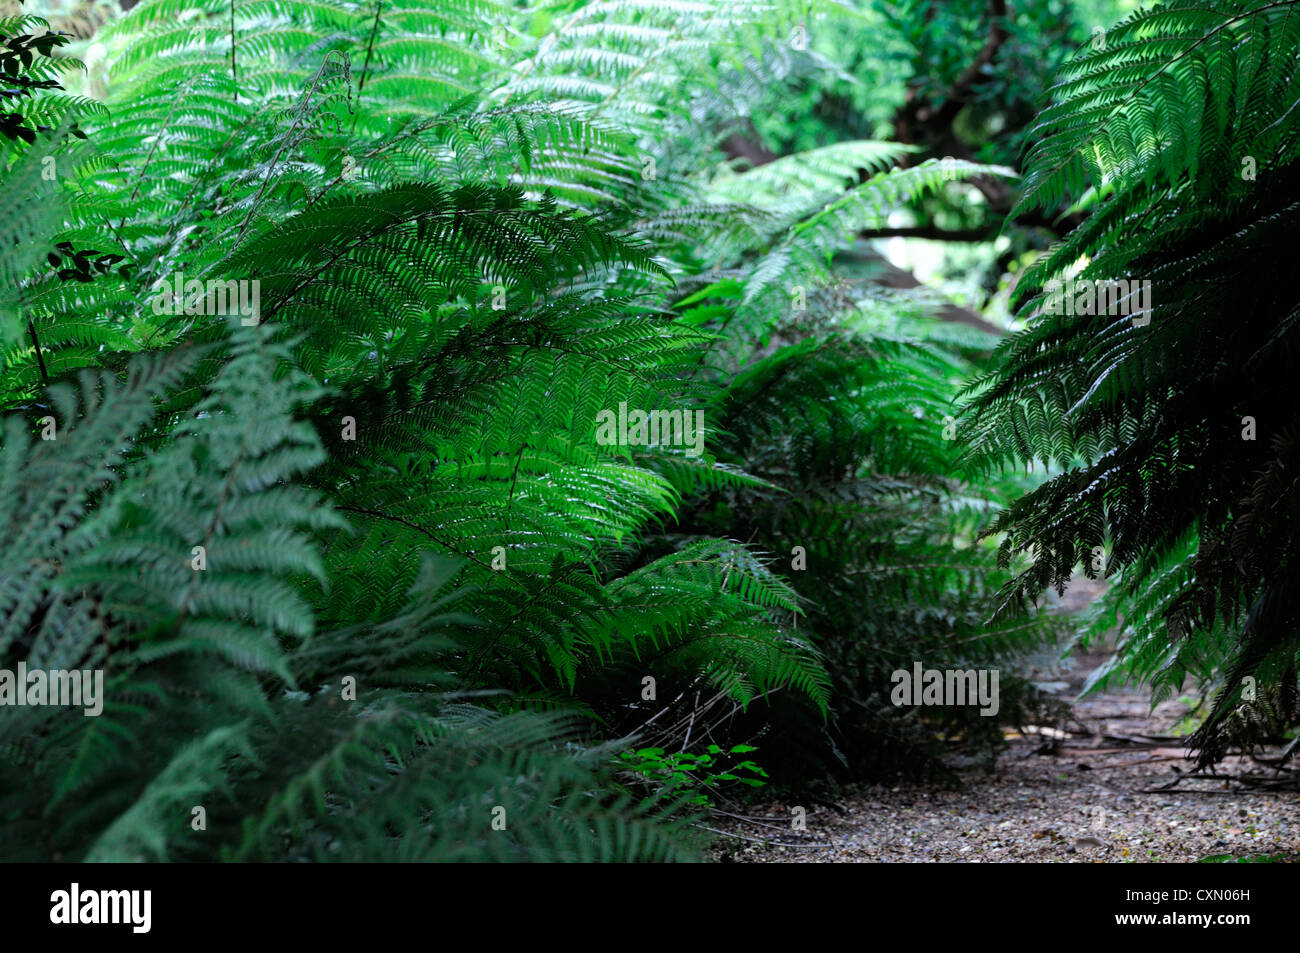 dicksonia antartica tree ferns line lined lining path pathway green leaf leaves foliage tree ferns exotic planting - Stock Image